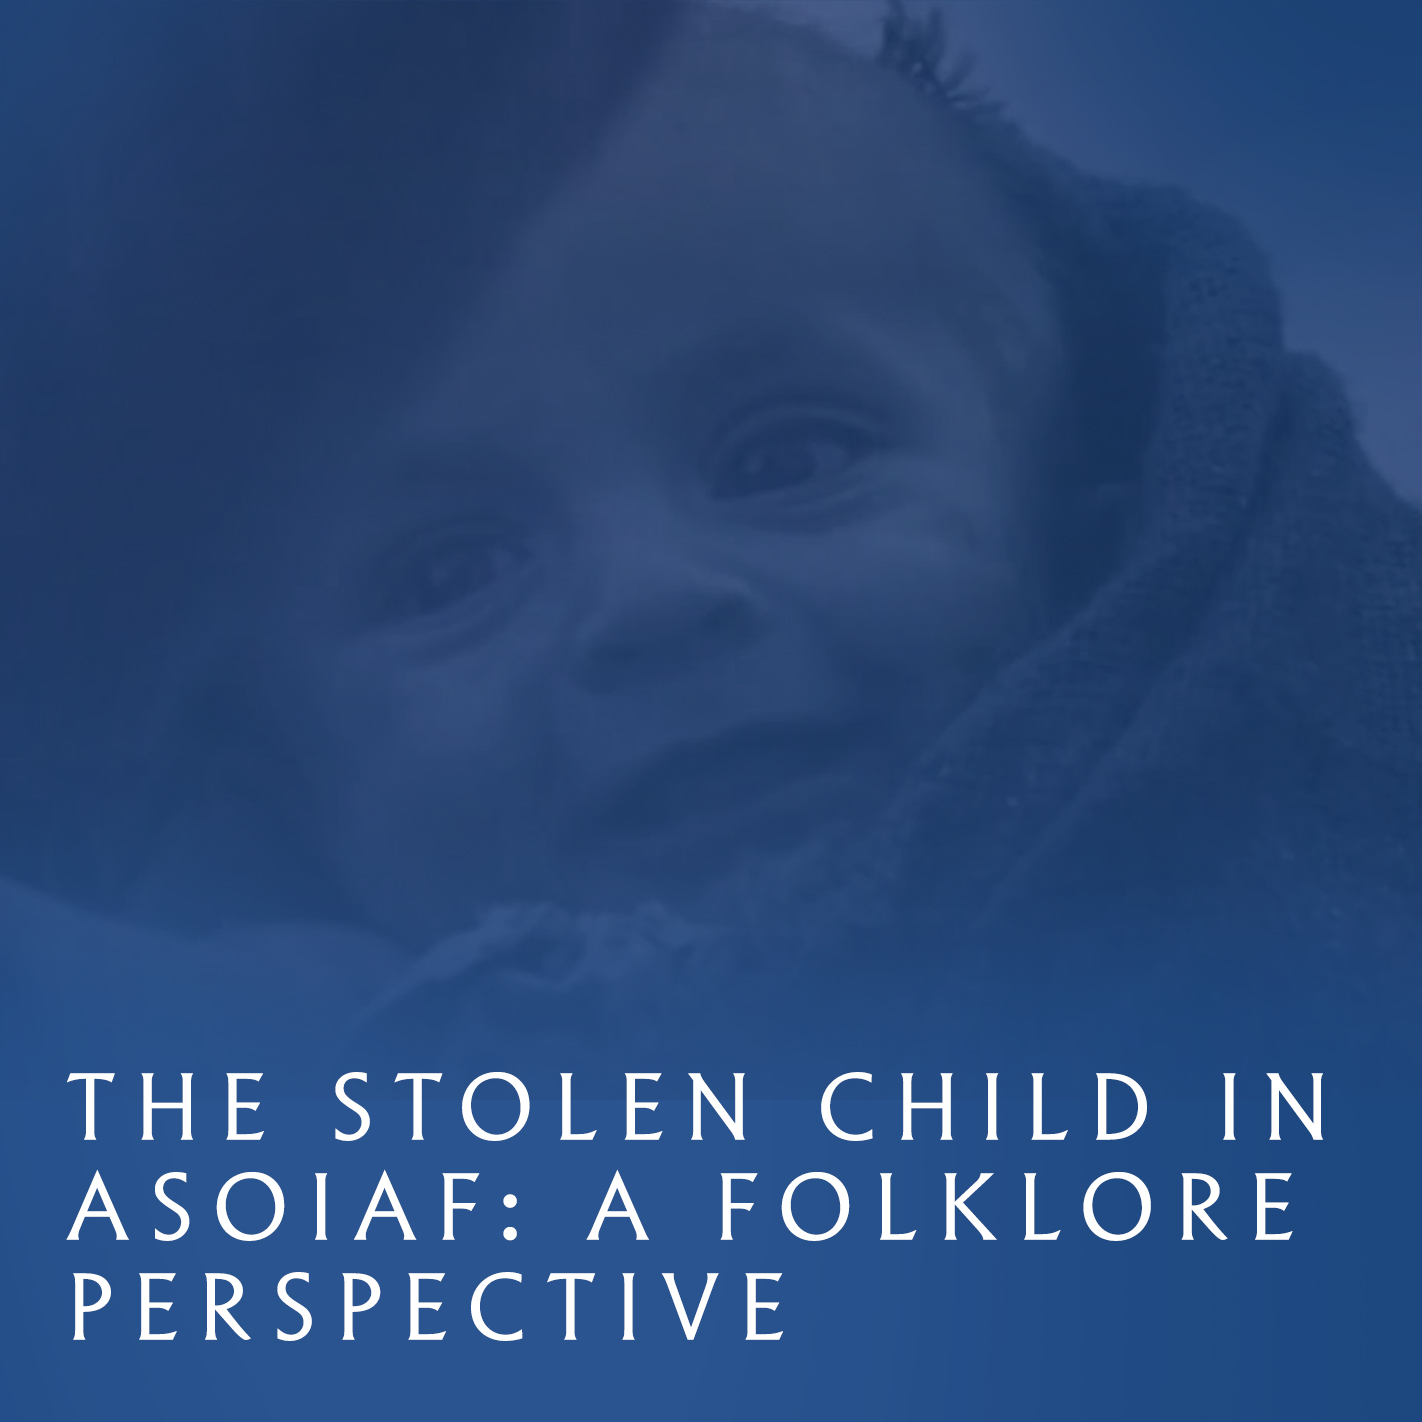 From White Walkers taking babies left in the forest to Daenerys losing her baby in an act of blood magic—the motif of the stolen child is rampant in ASOIAF. Our panelists will trace the origins of the stolen child in myth and literature, calling on fairy tales, folklore, and  A Midsummer Night's Dream .